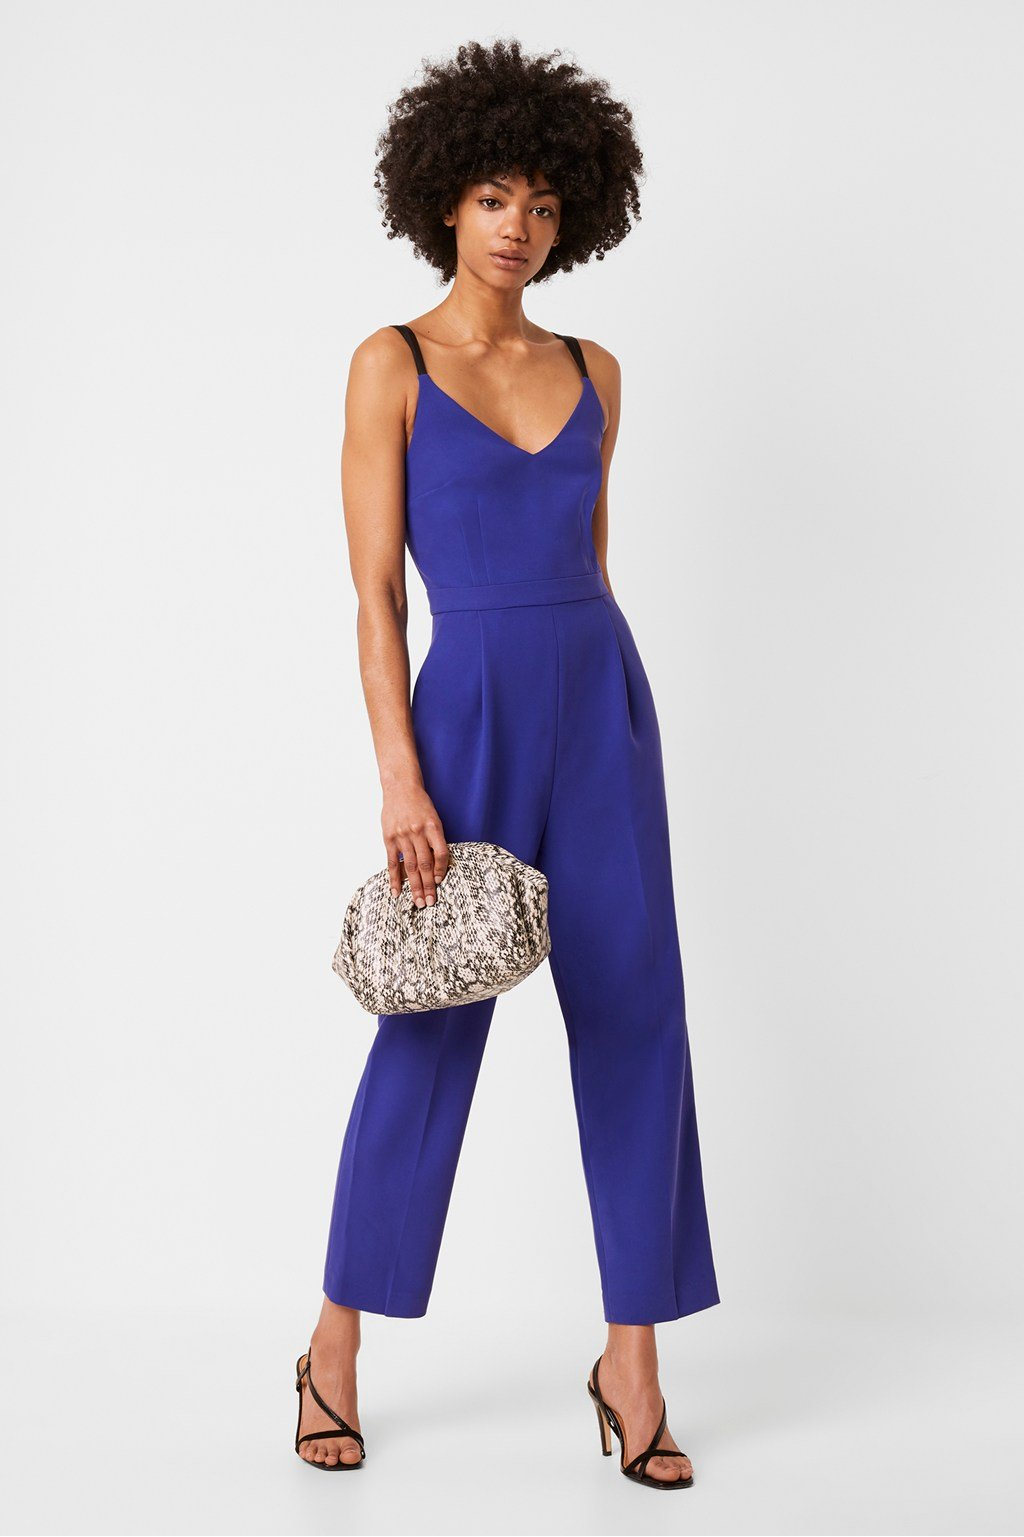 Anana Whisper Strappy Jumpsuit, £130